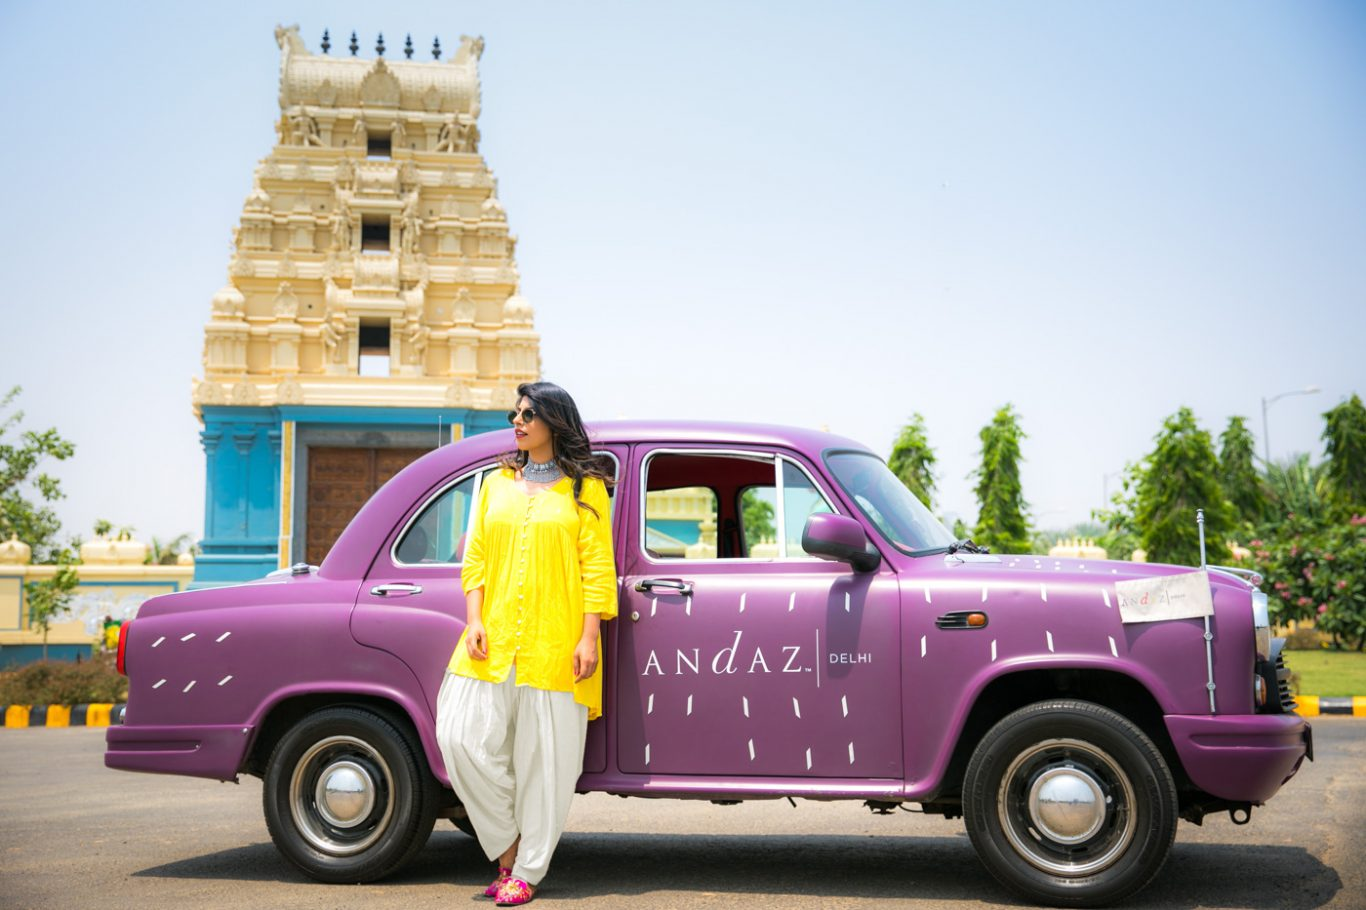 Driving around Delhi in Andaz Delhi vintage ambassador